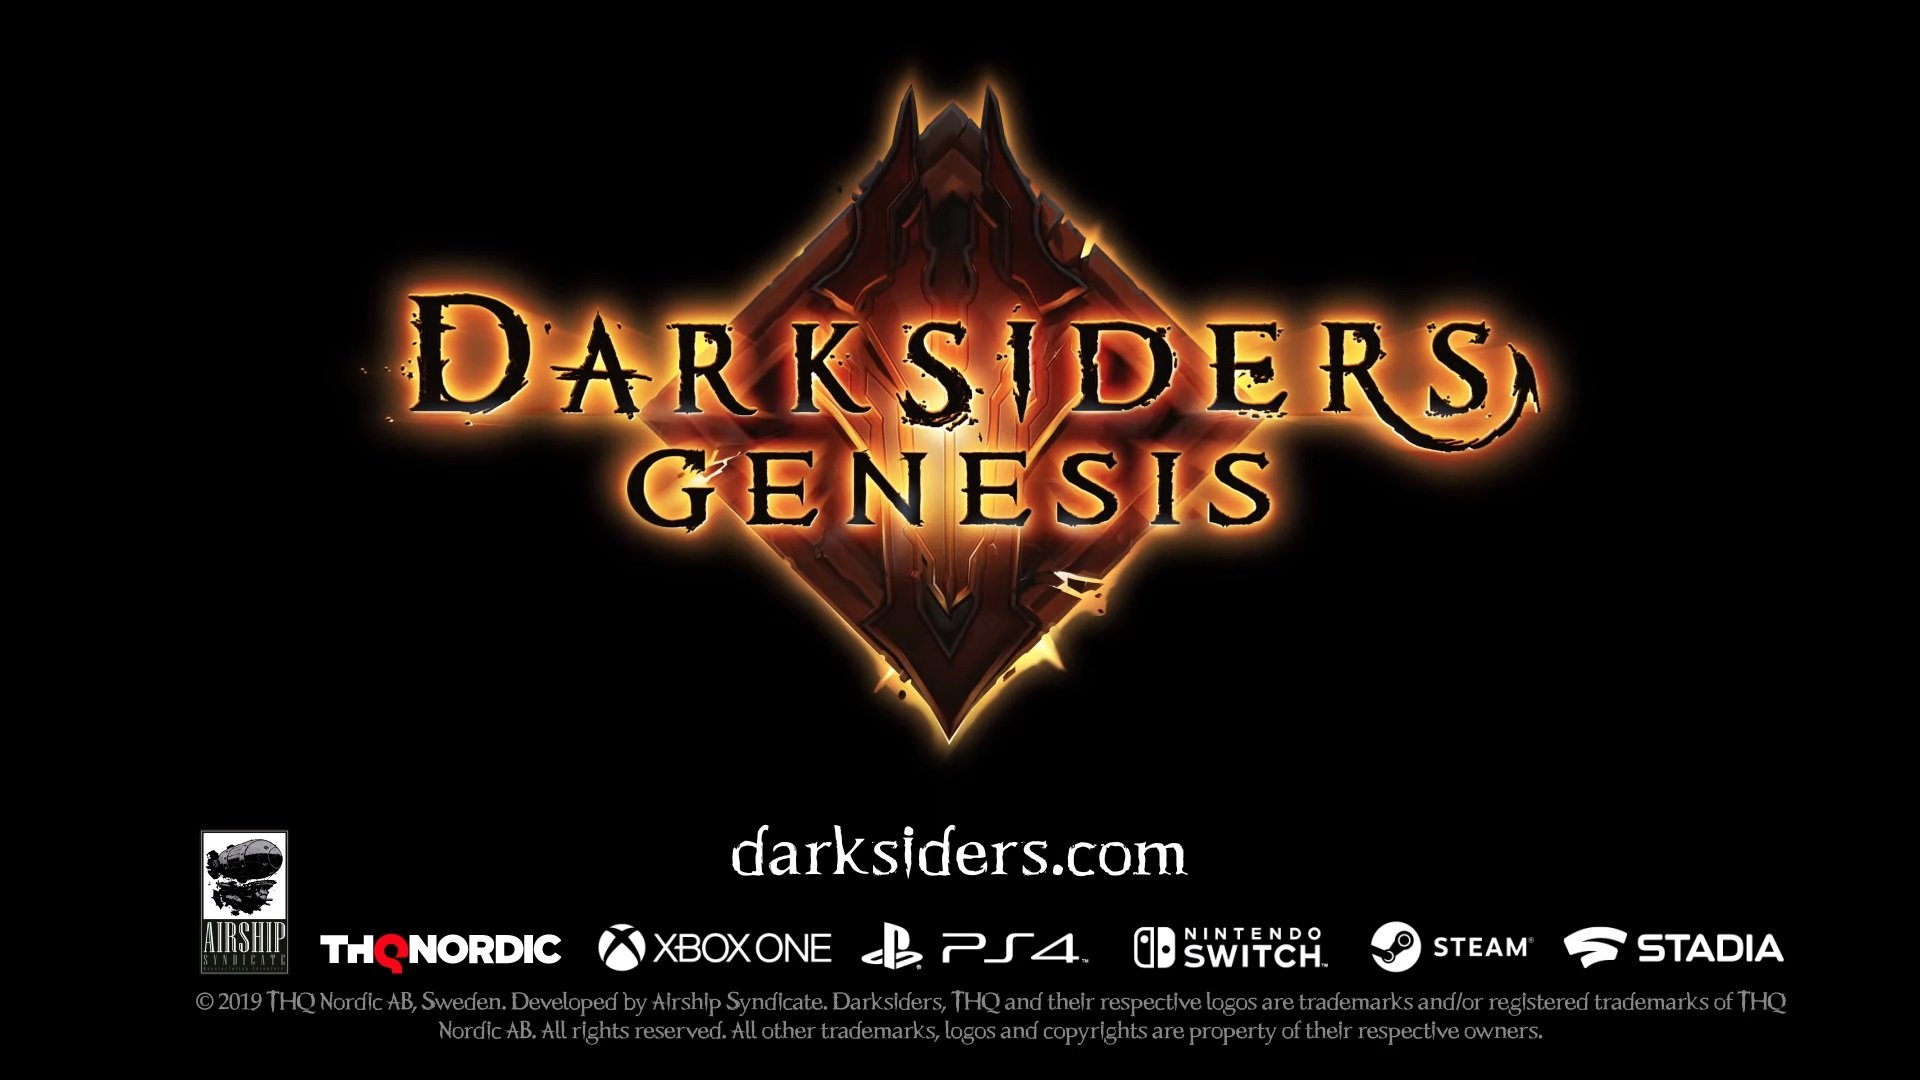 THQ Nordic confirms Darksiders Genesis ahead of E3 2019.